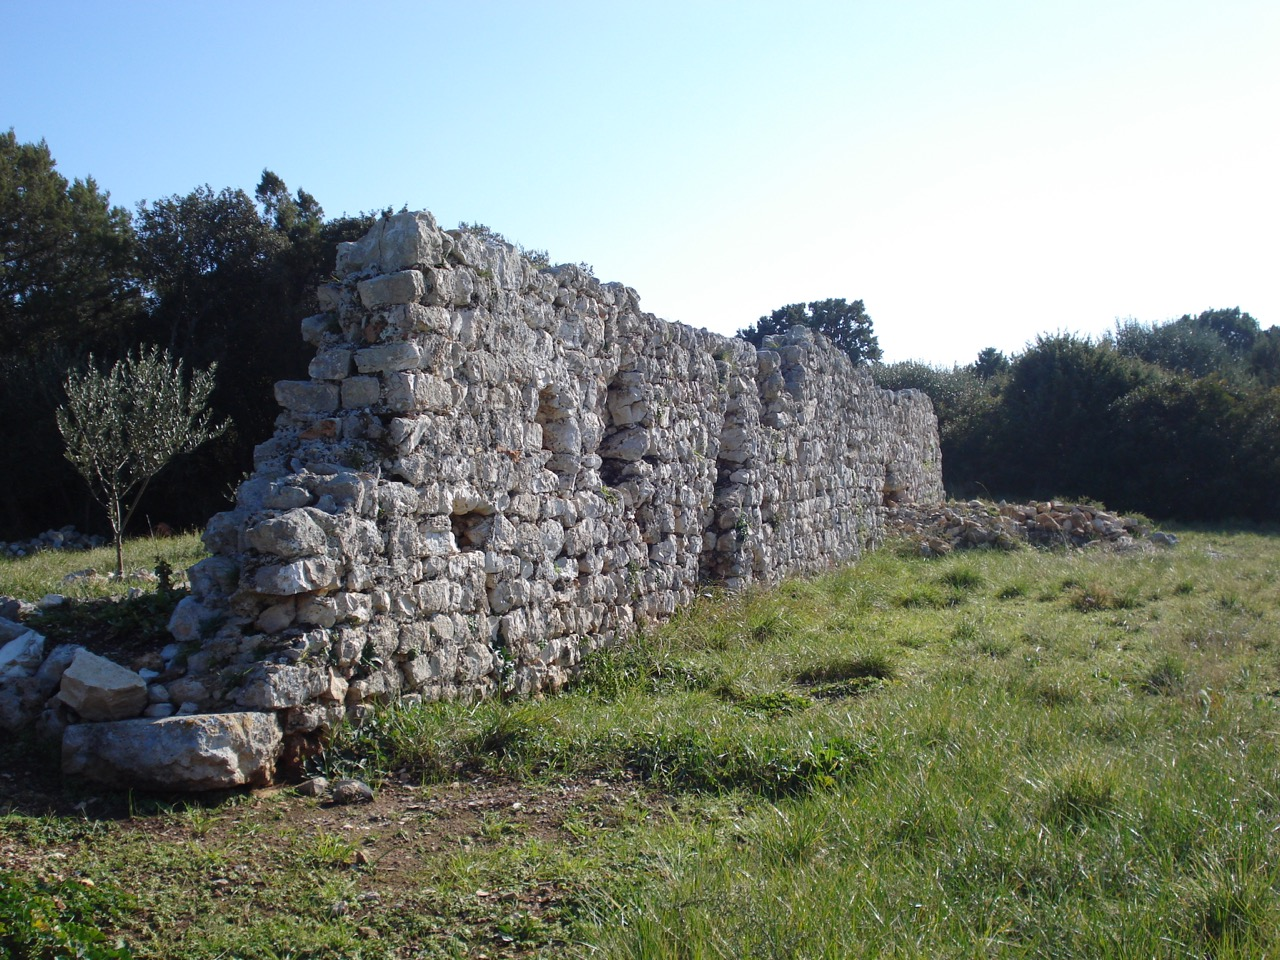 Ostaci rimske vile / The remains of a Roman villa